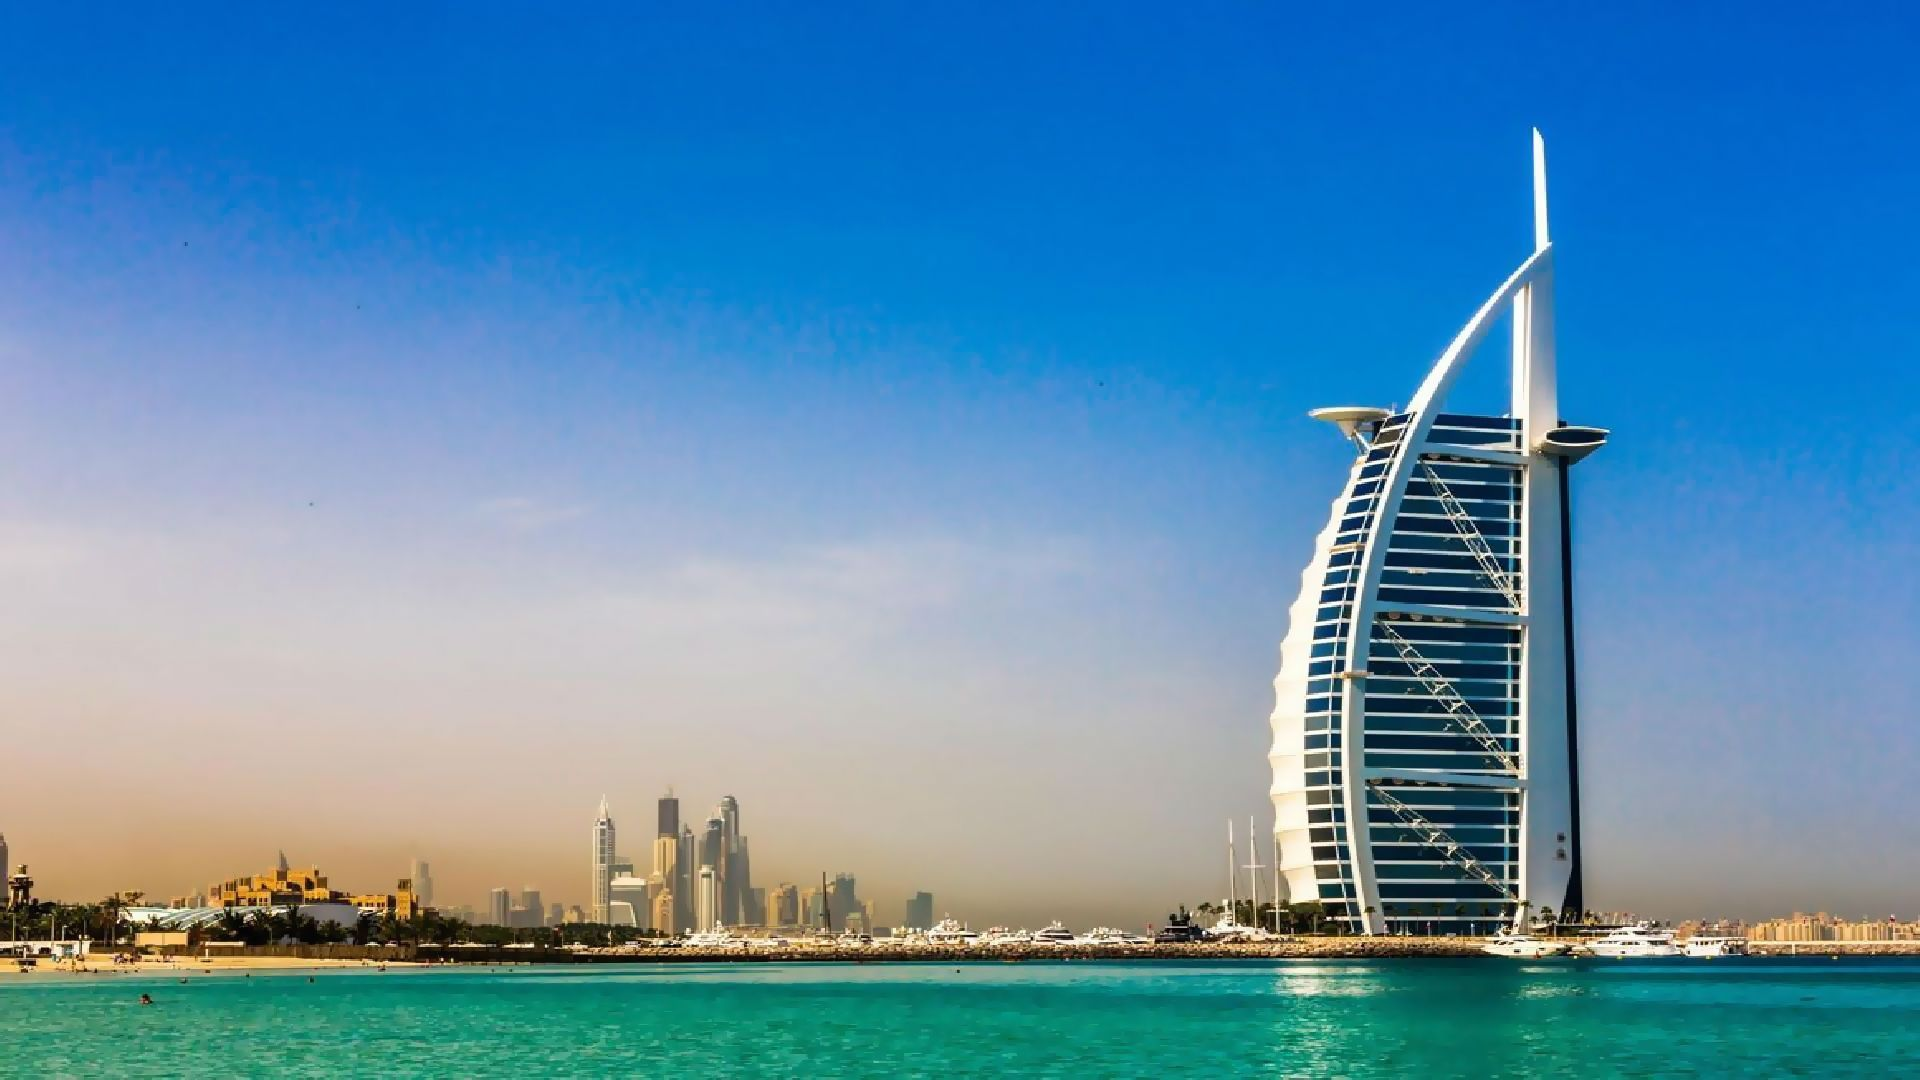 free download wallpaper hd favorite things dubai high